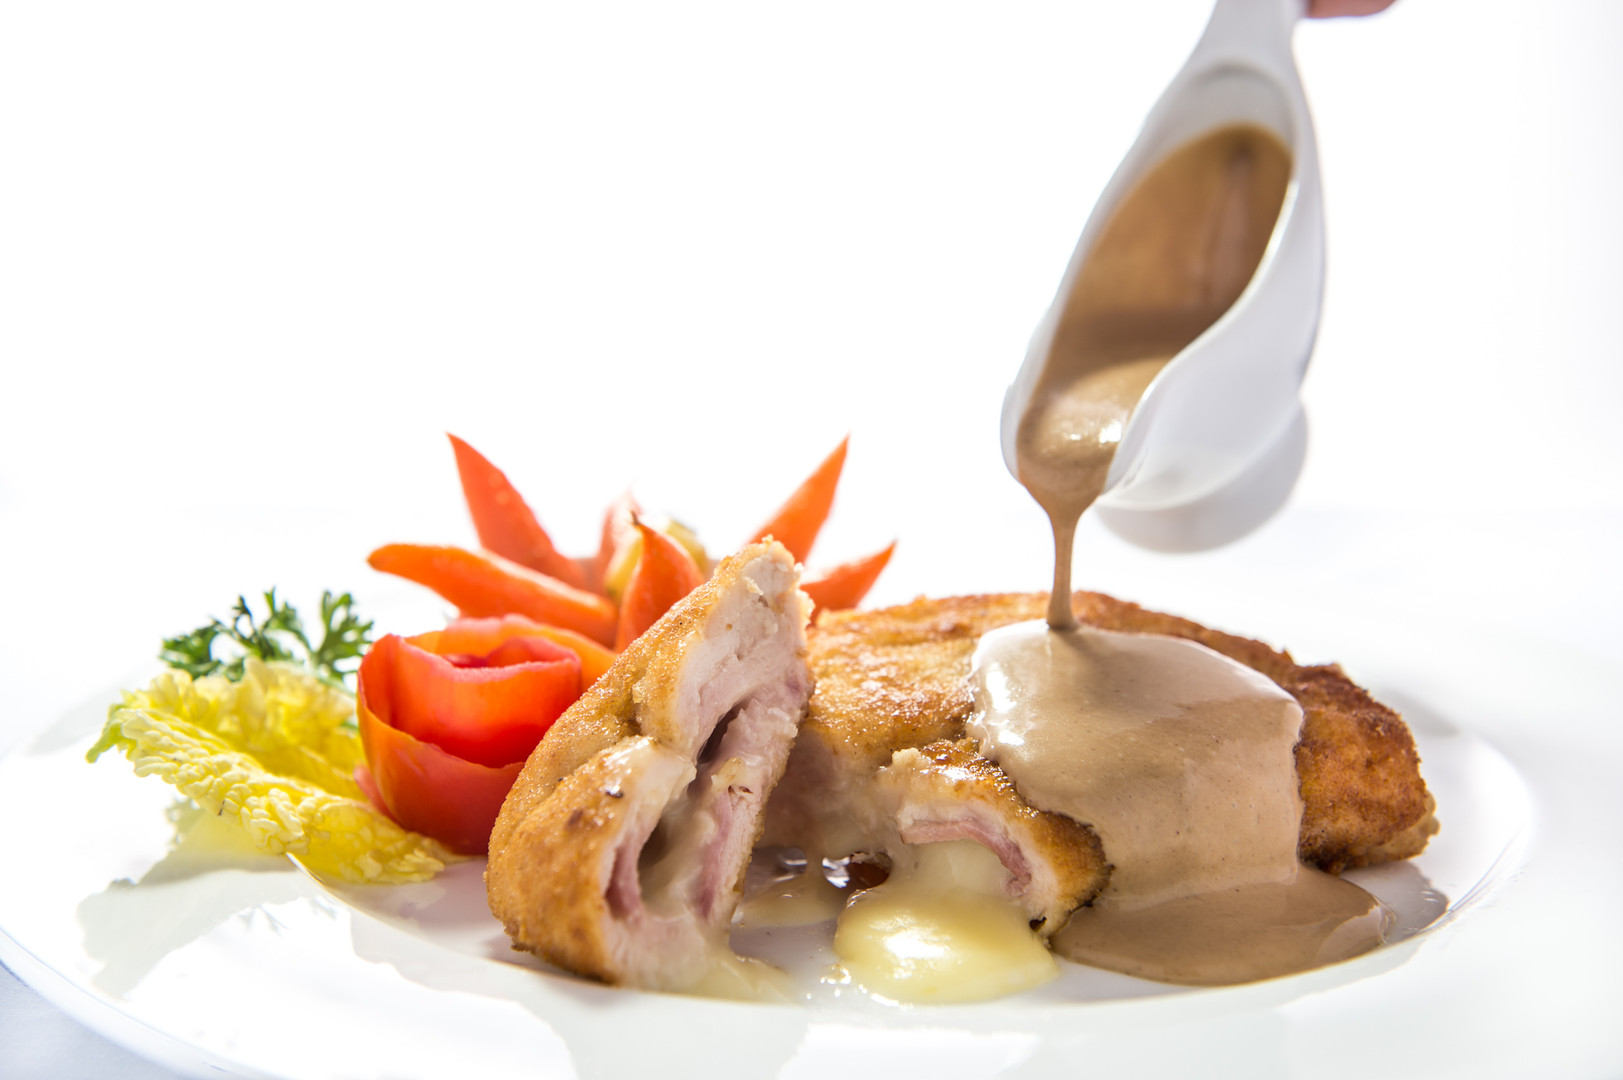 Chicken cordon bleu by L'Annexe French restaurant in Siem reap.jpg